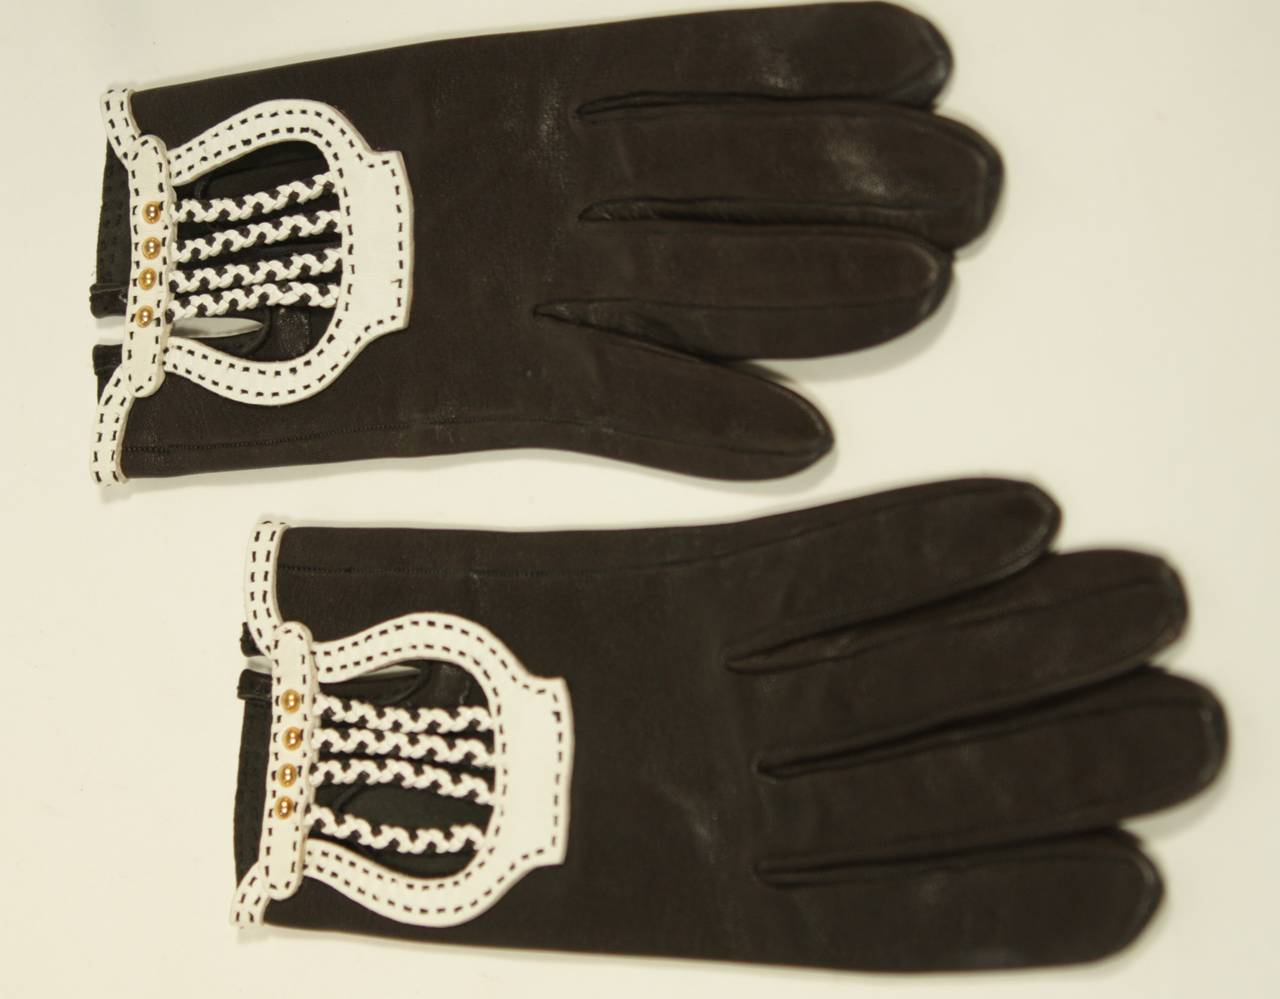 Hermes Black Leather Gloves with White Accents and Braiding Size 6.5 For Sale 1